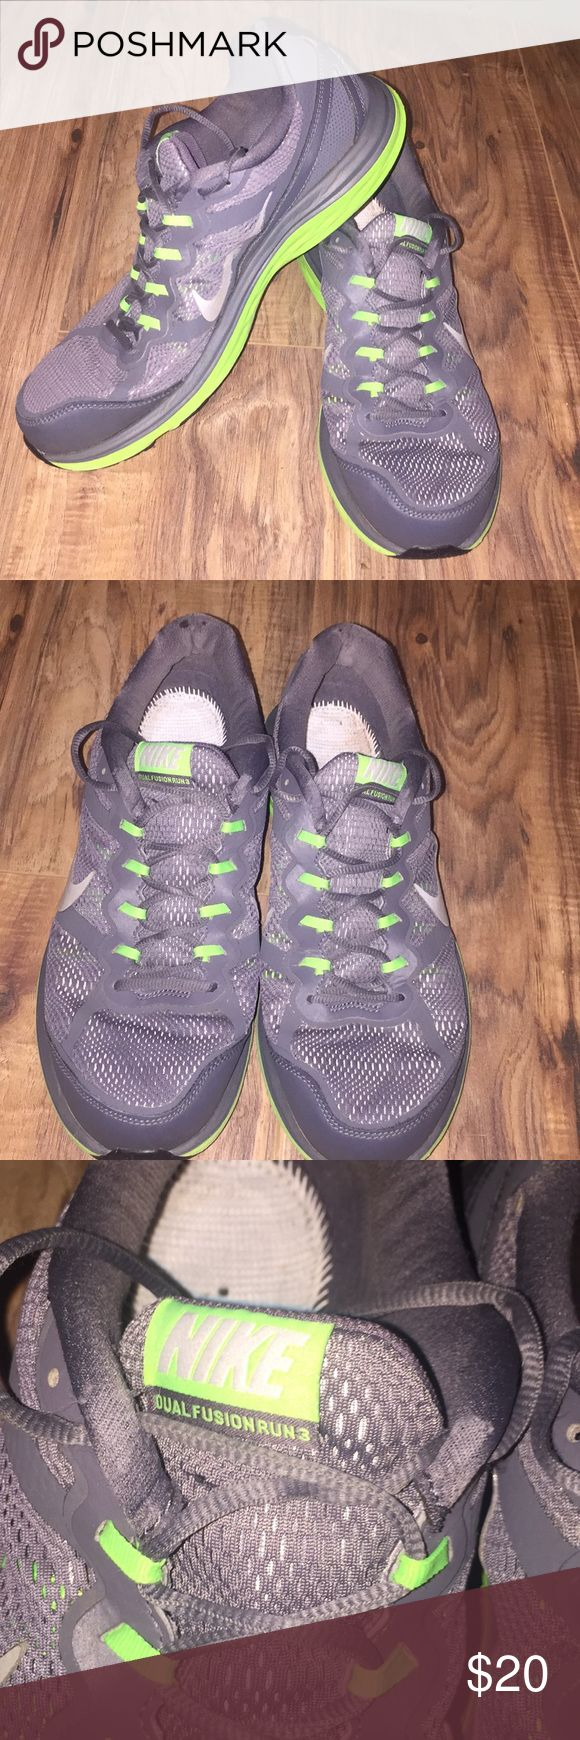 Men's Nike Dual Fusion Run 3 size 11.5 Men's pair of Nike Dual Fusion Run 3, Size 11.5–These do show some signs of wear and do need new insoles. We accept reasonable offers and ship quickly! Thank you for looking! Nike Shoes Athletic Shoes